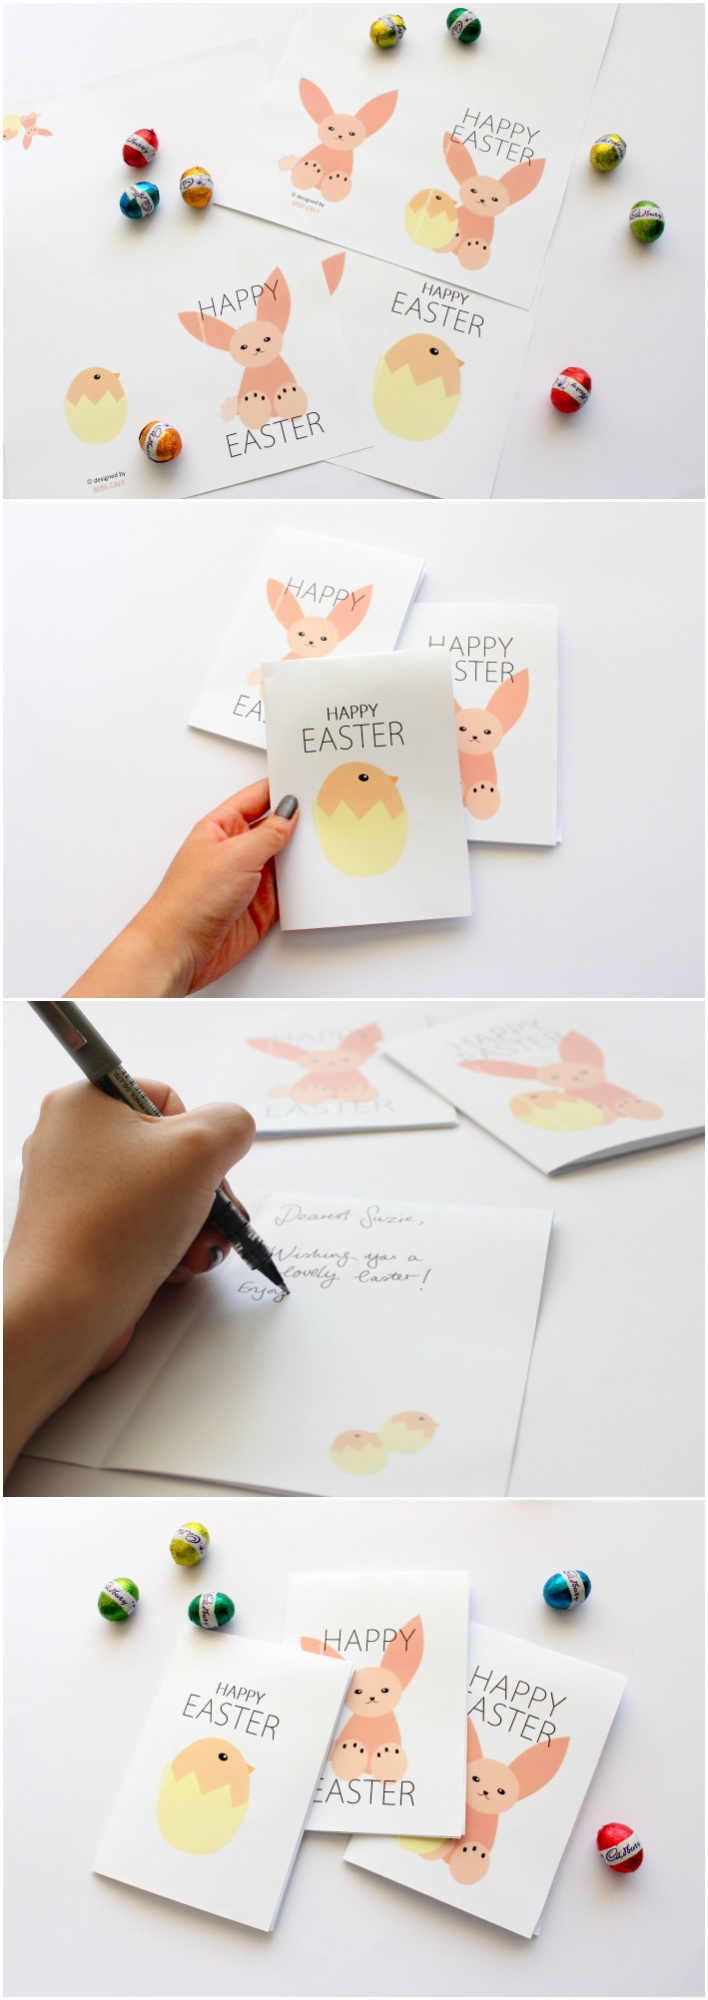 Printable Easter Cards! Rabbit and Chick Friends - Designed by Miss Caly